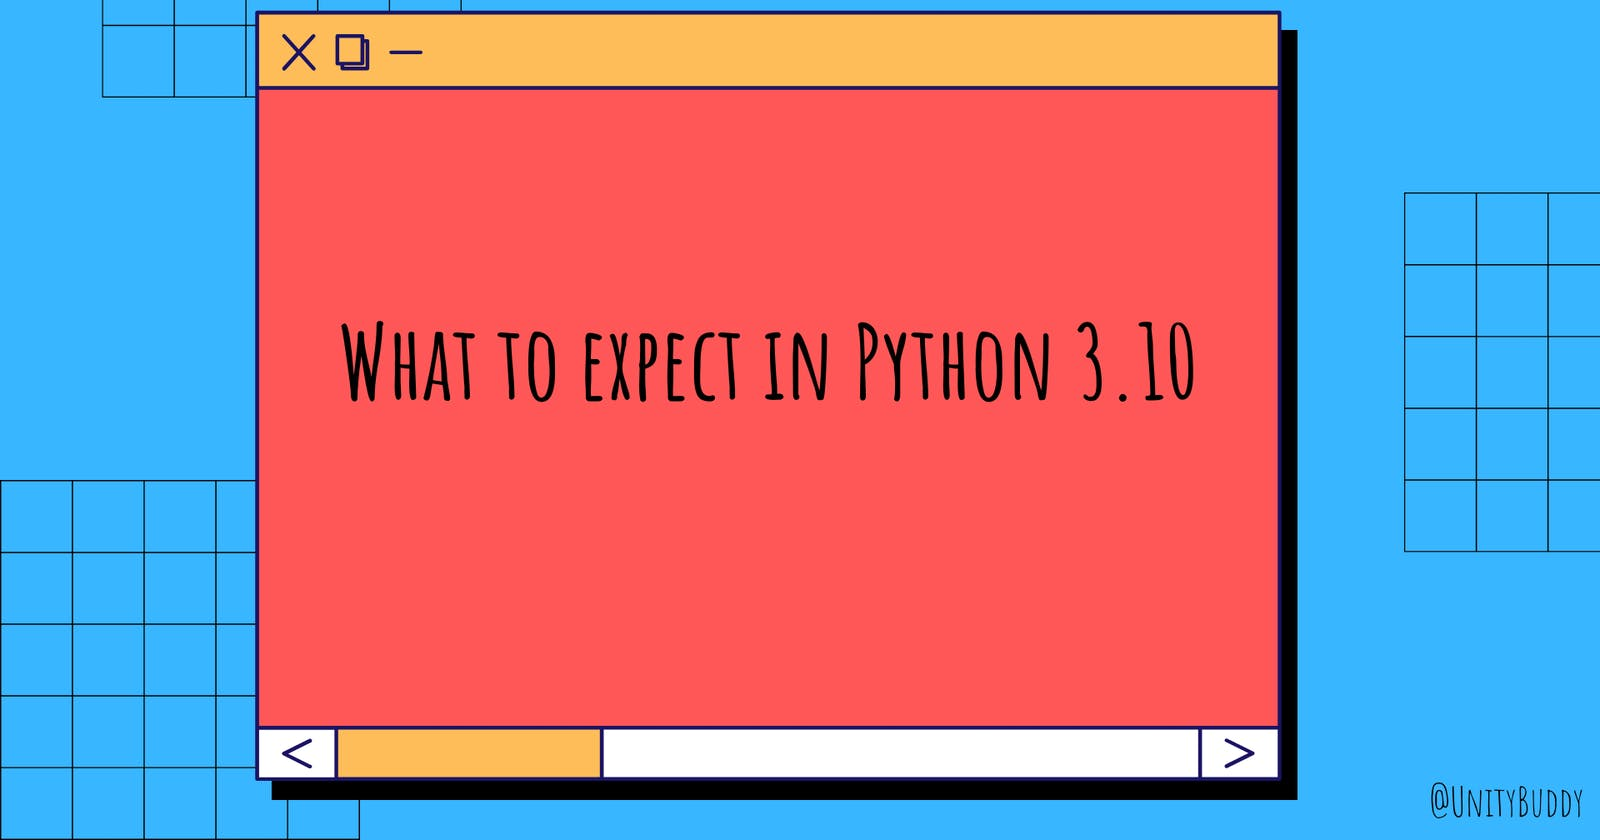 What to expect in Python 3.10 🤯